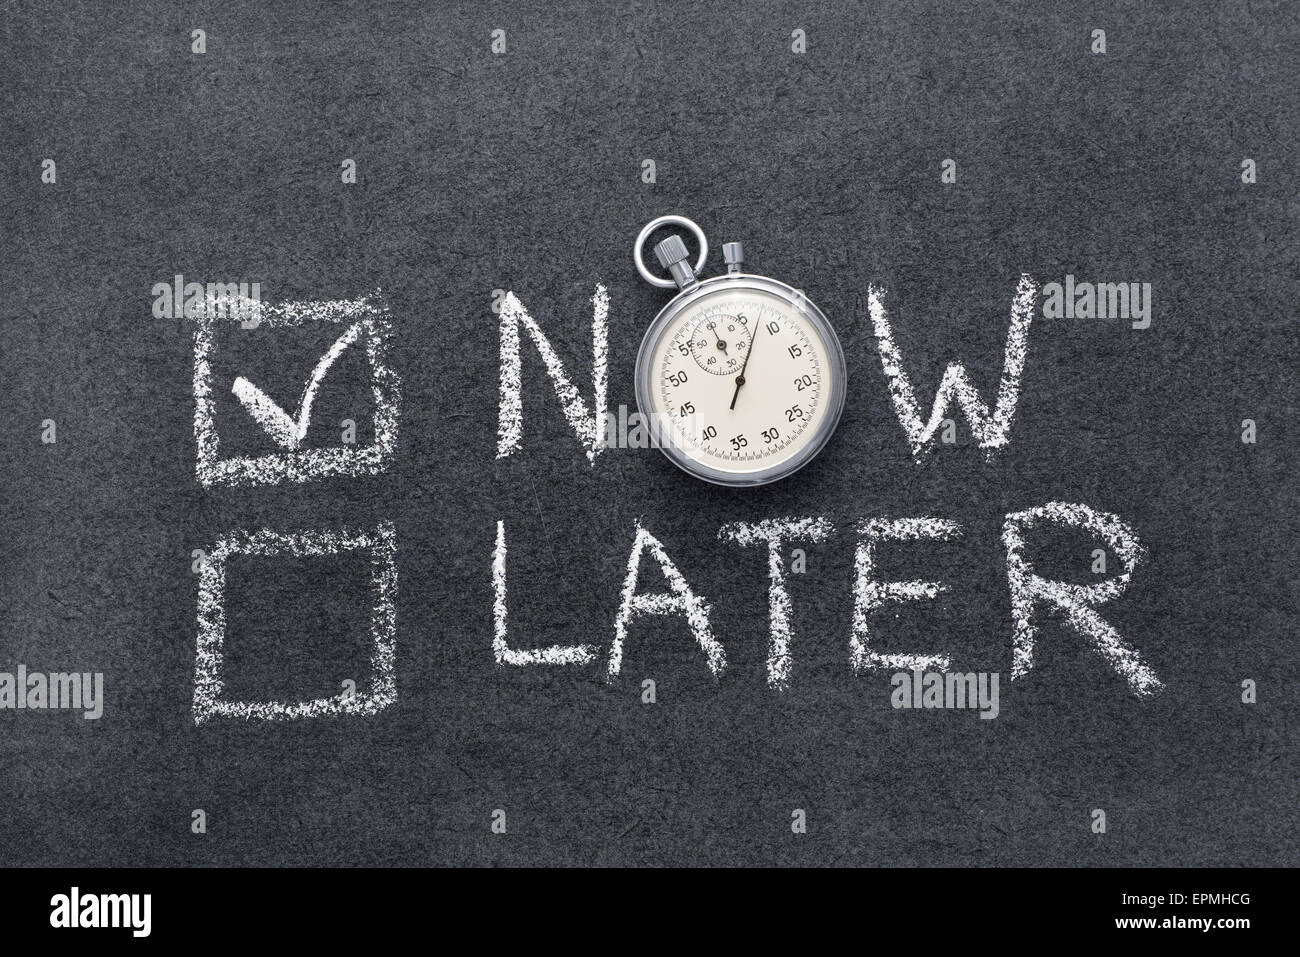 now or later concept handwritten on chalkboard with vintage precise stopwatch used instead of O - Stock Image